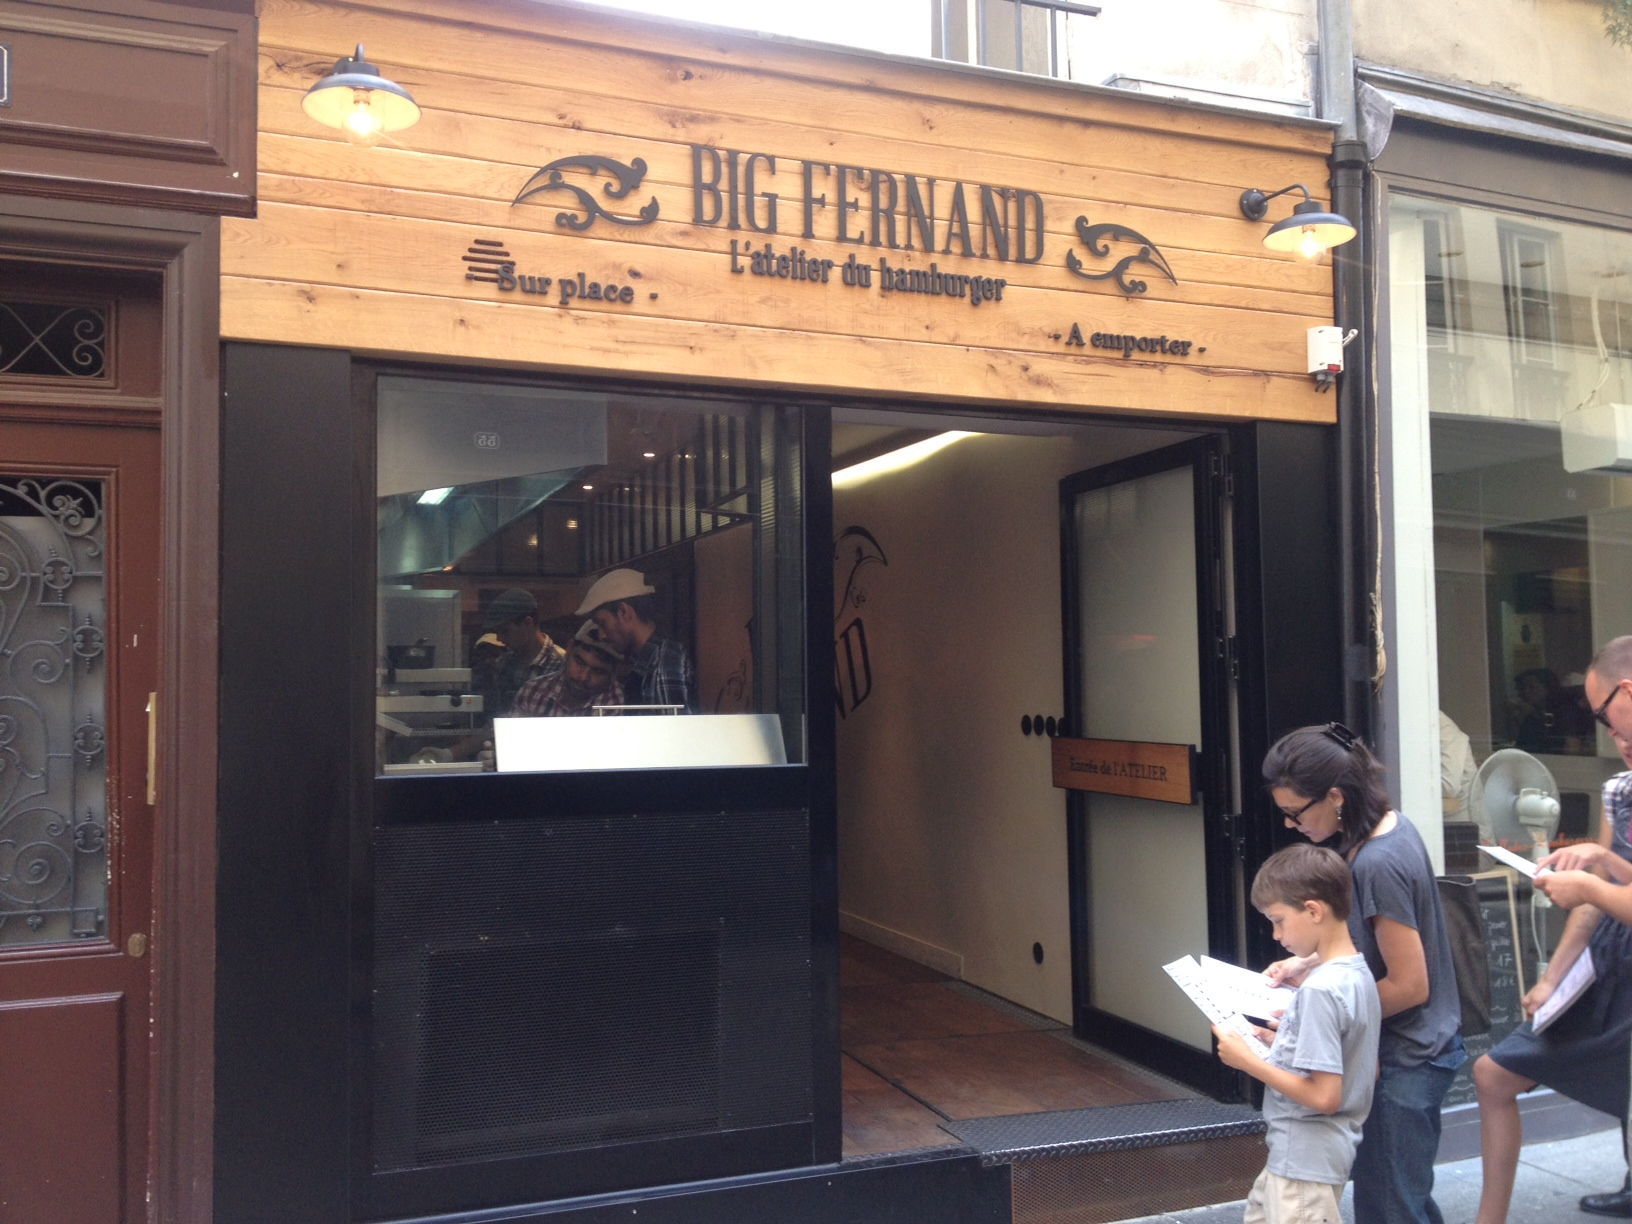 Big Fernand - Paris 02